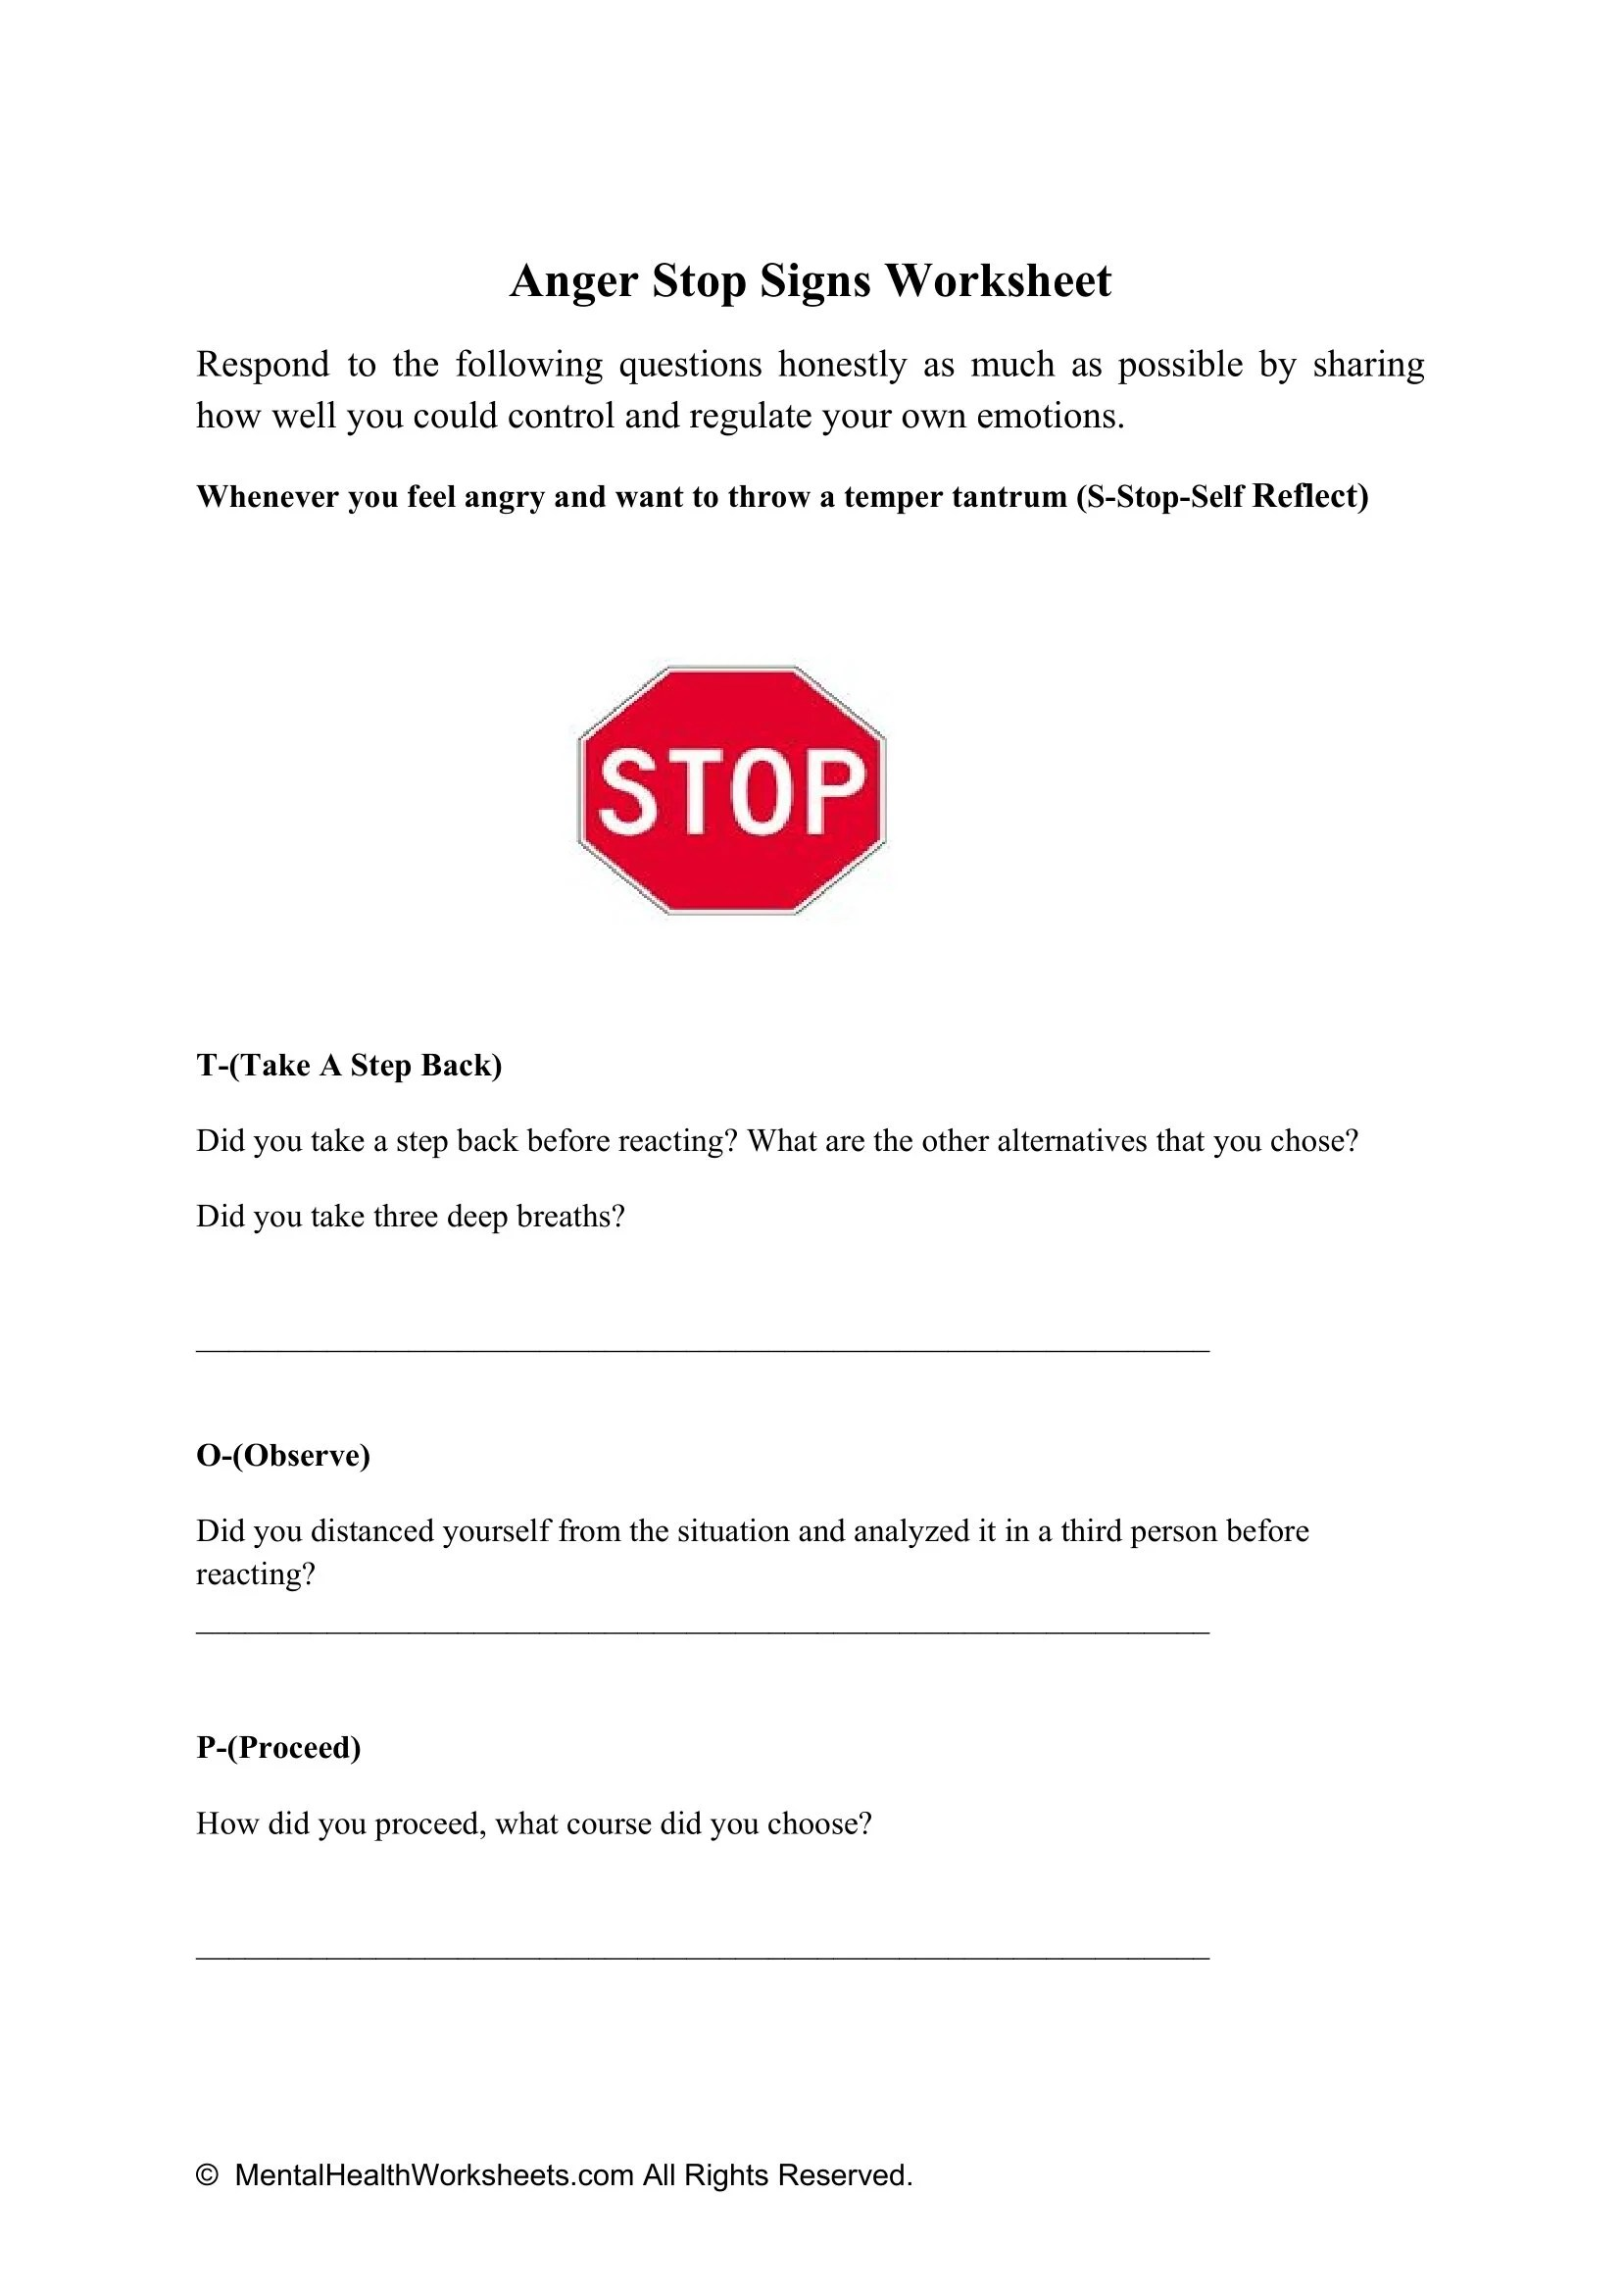 Anger Stop Signs Worksheet